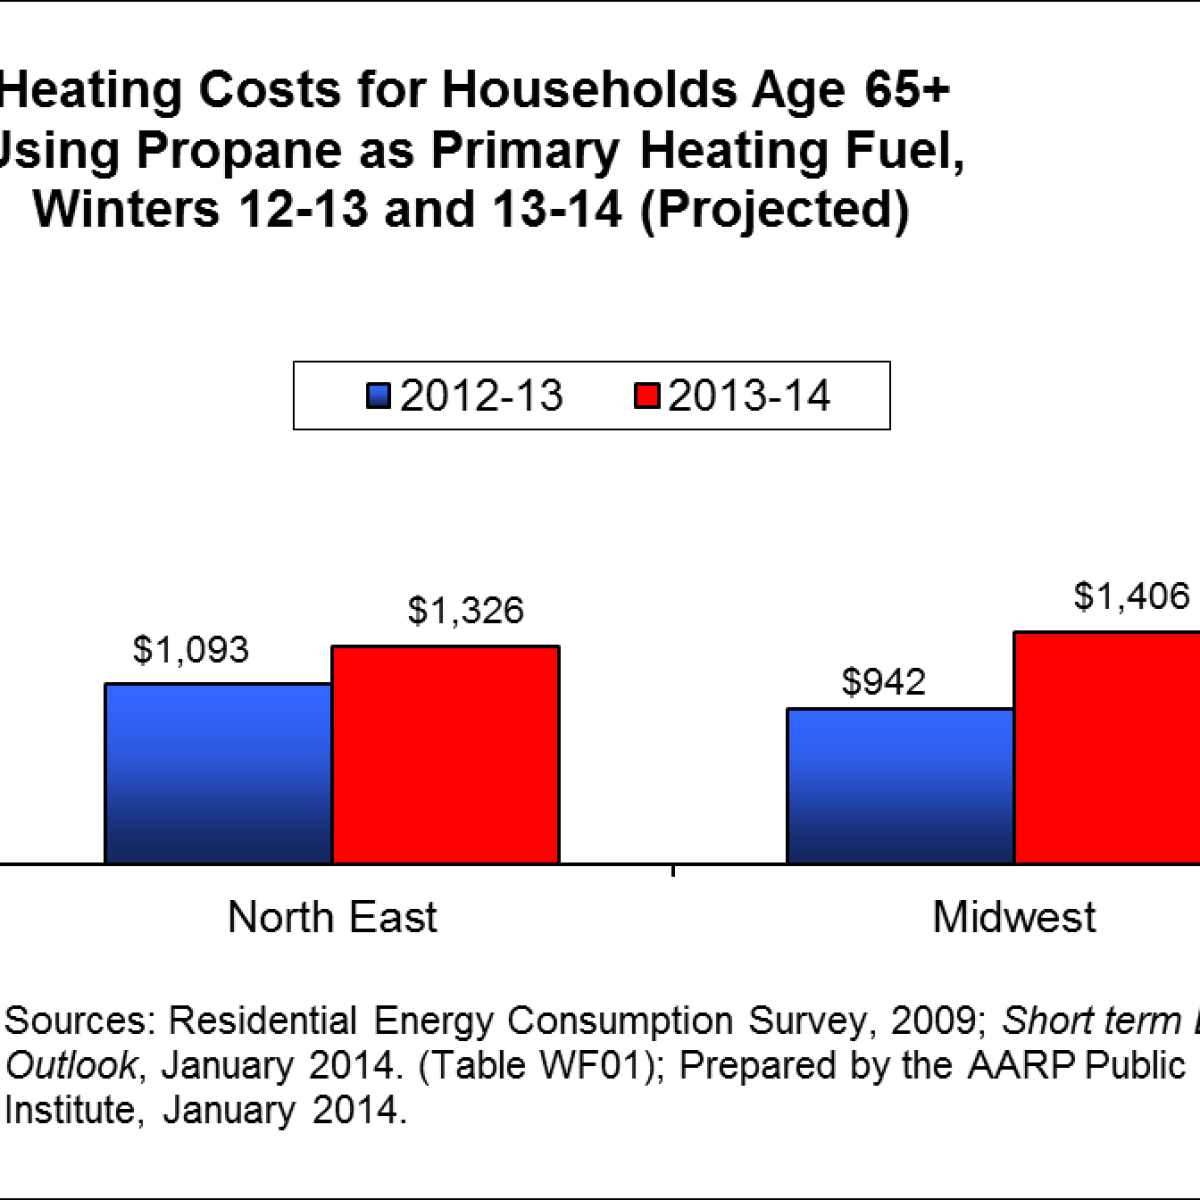 Rising Propane Prices, Shortages, Add to Winter Woes